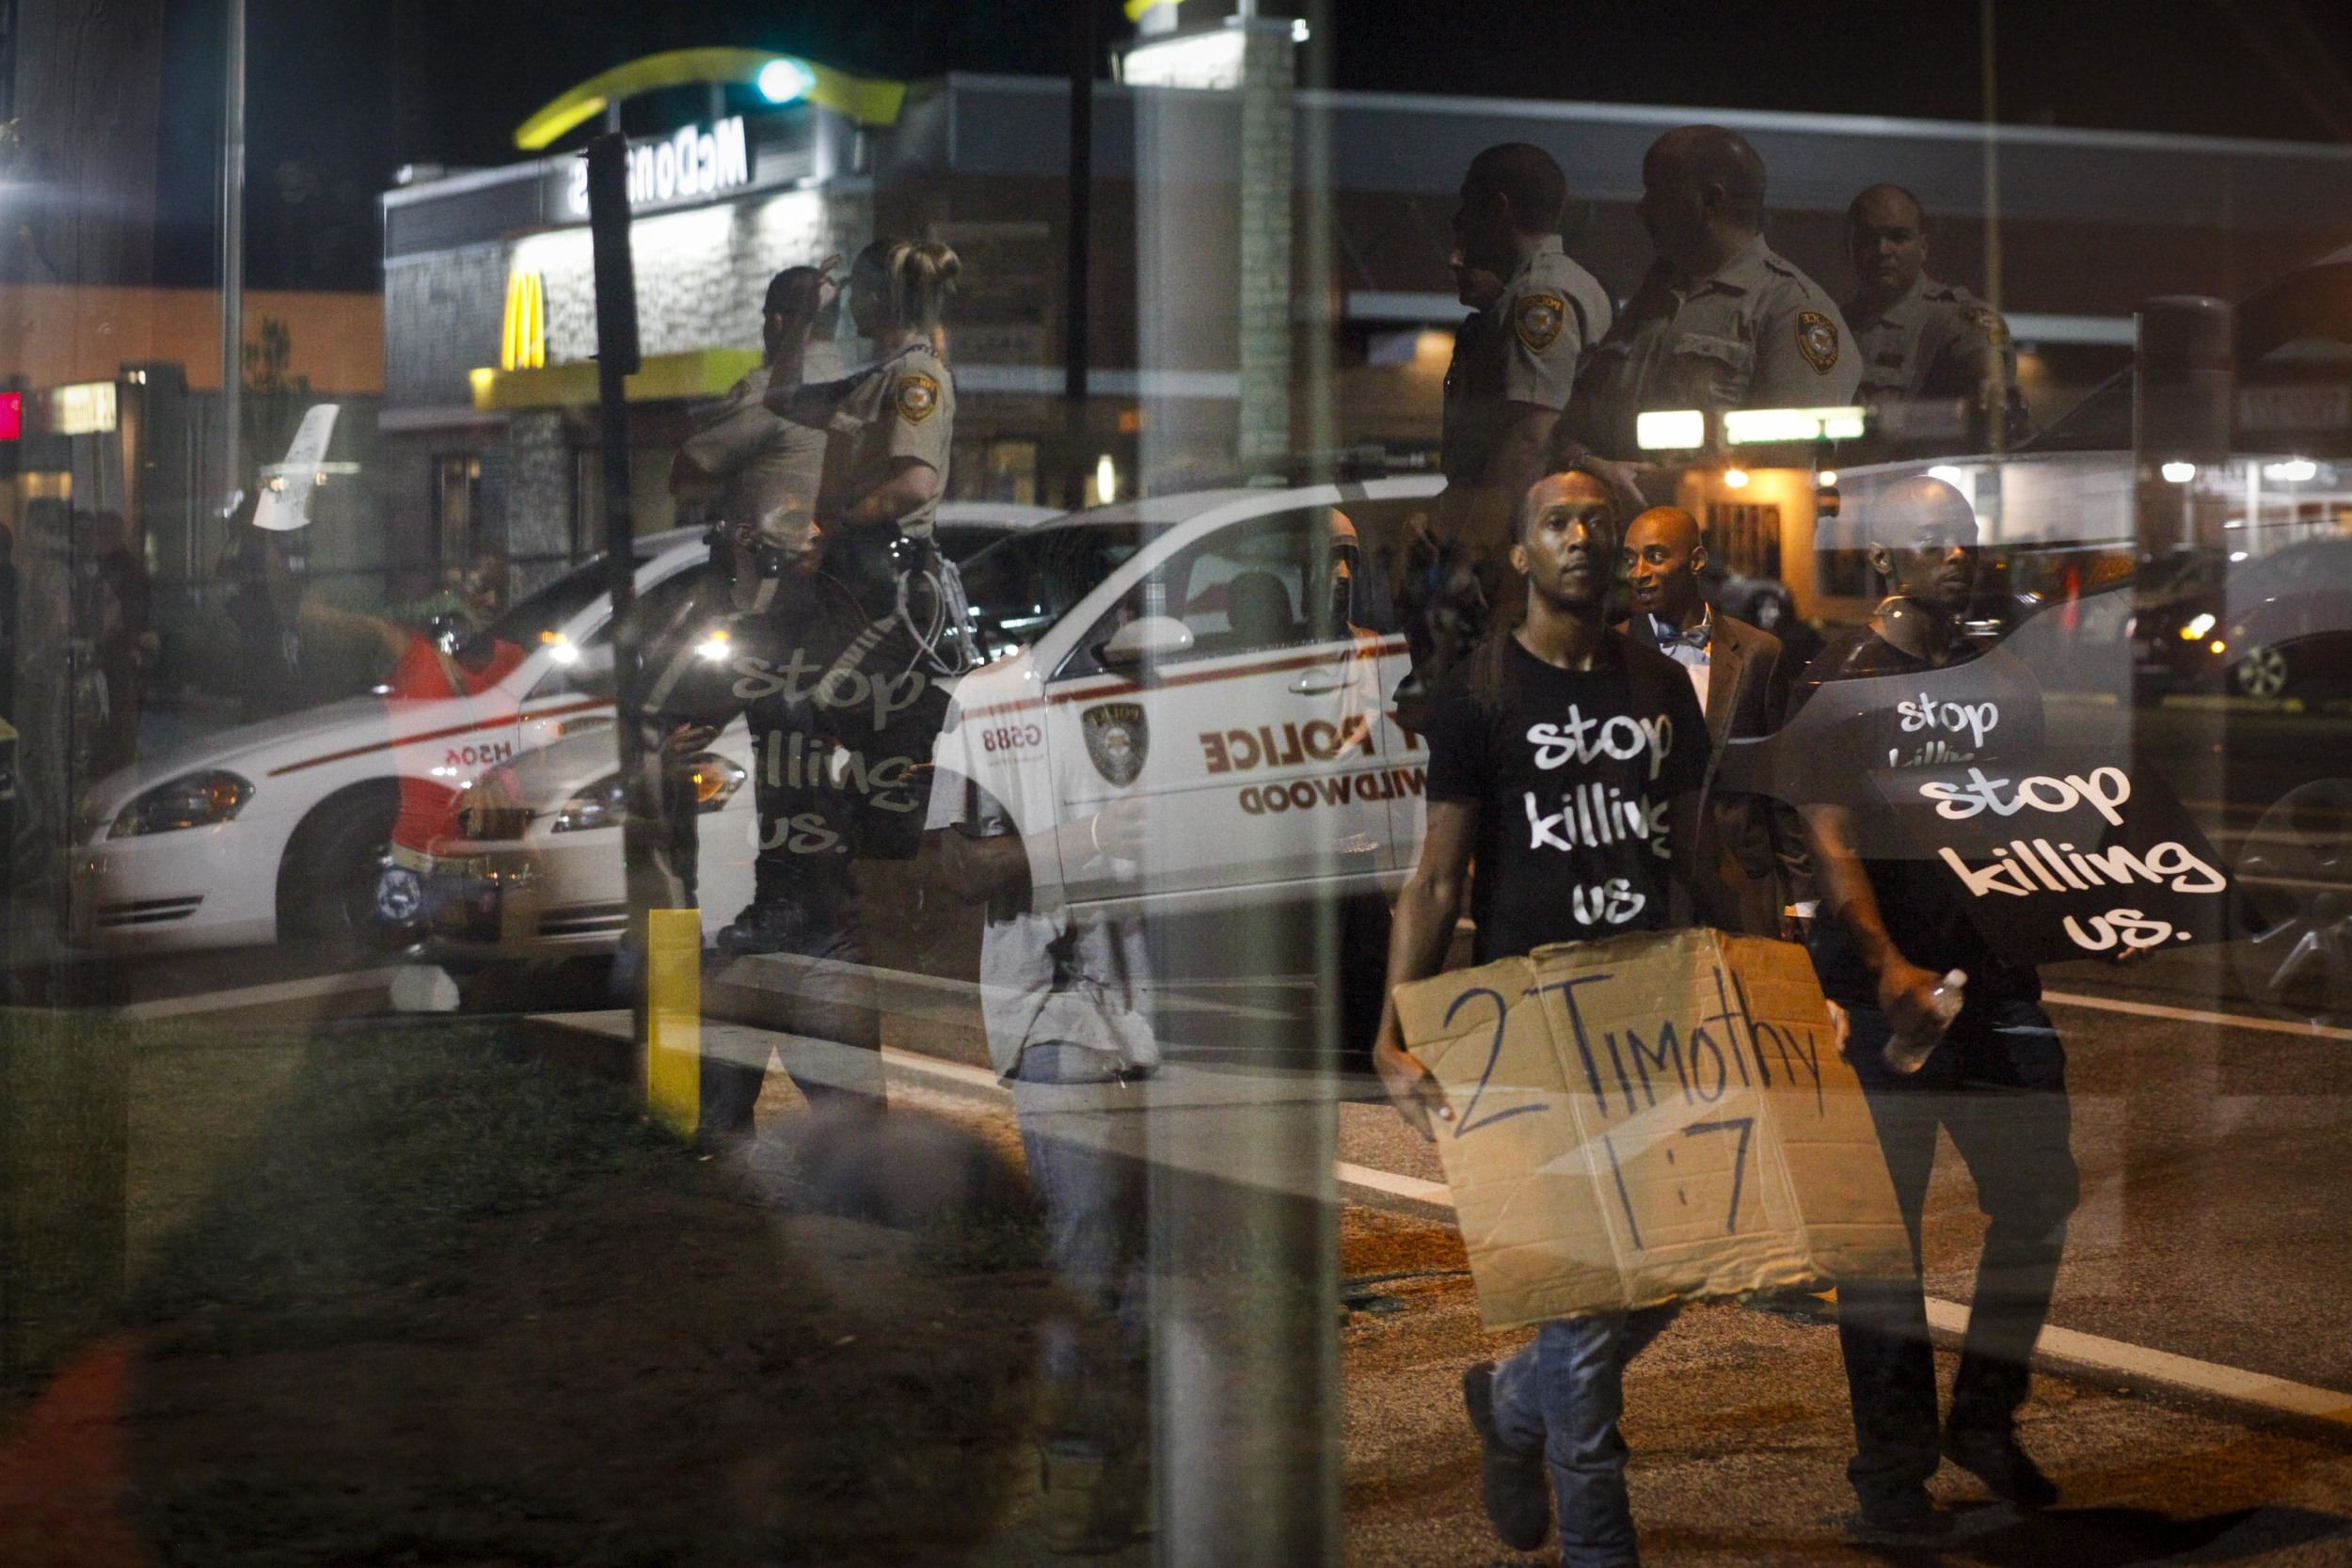 Protestors walk past a bus stop at W. Florissant and Ferguson Ave. as law enforcement officers are reflected in the bus stop window August 20, 2014 in Ferguson, MO.